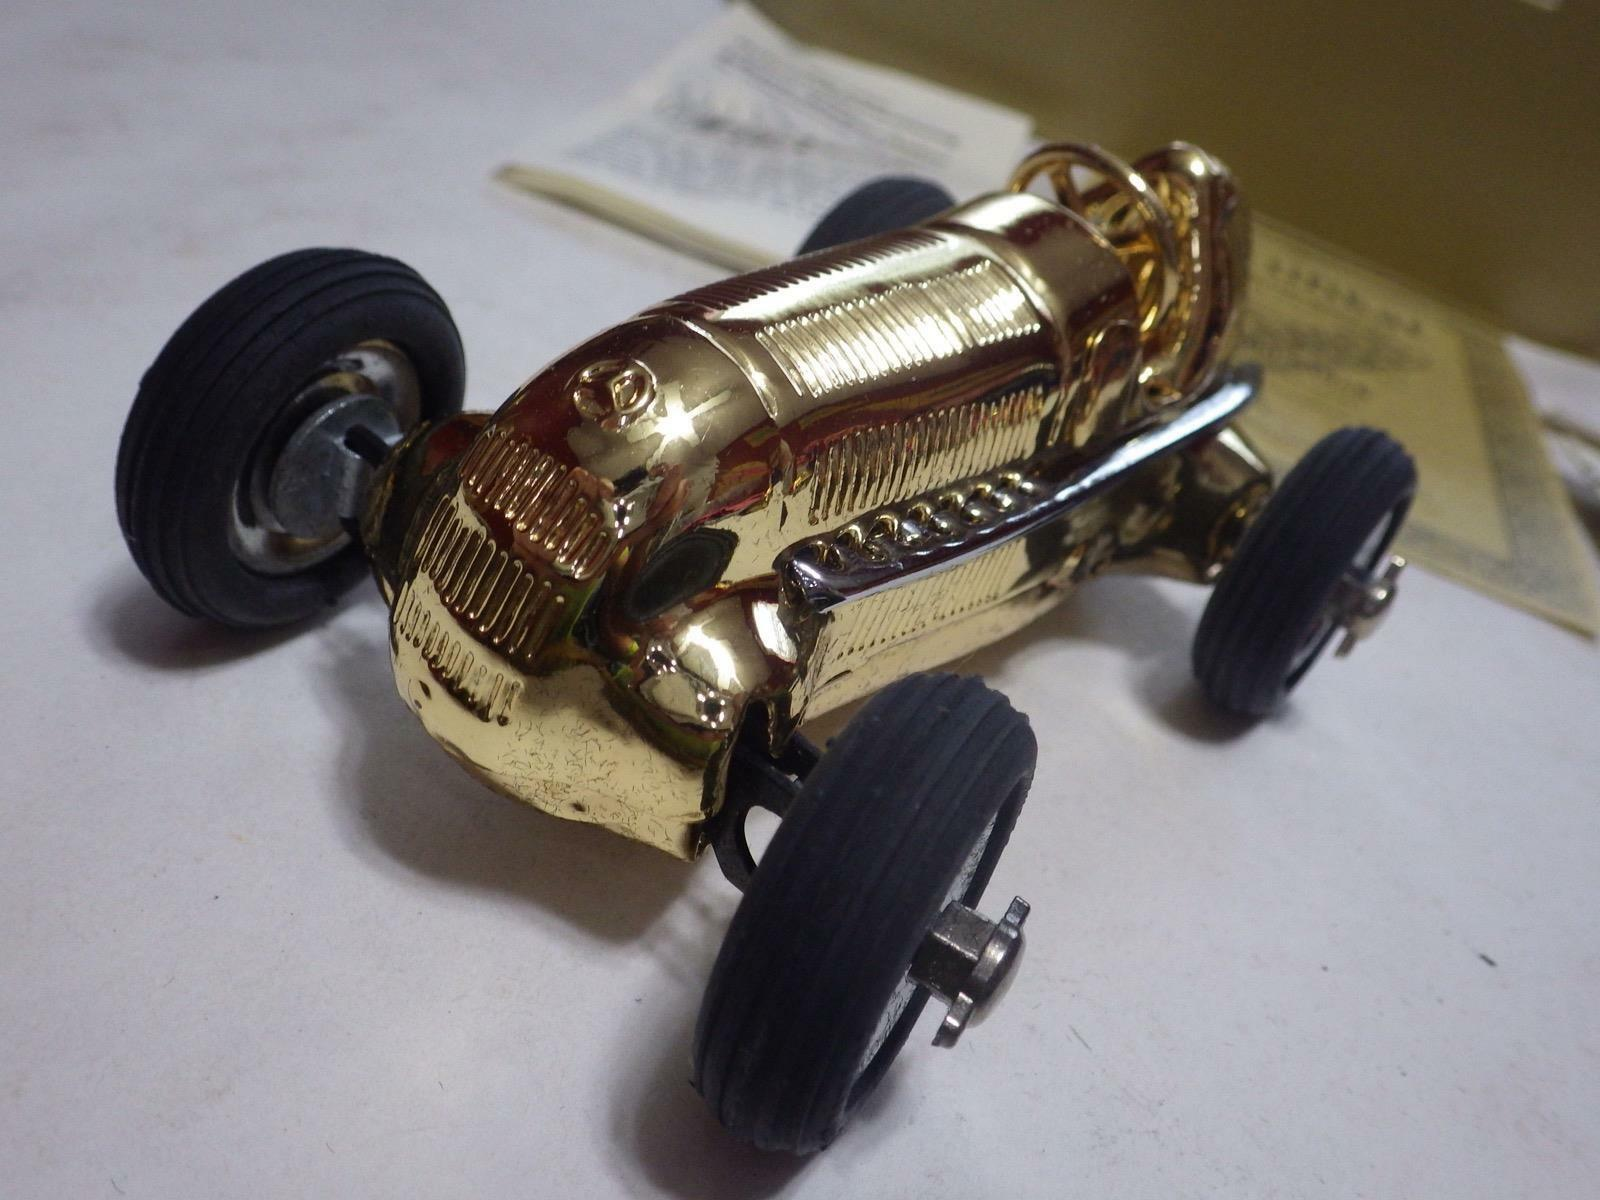 Schuco Millenium-Set (Germany) 3 gold-Plated 1936 Mercedes-Benz Mercedes-Benz Mercedes-Benz Racers NIB 9f042b